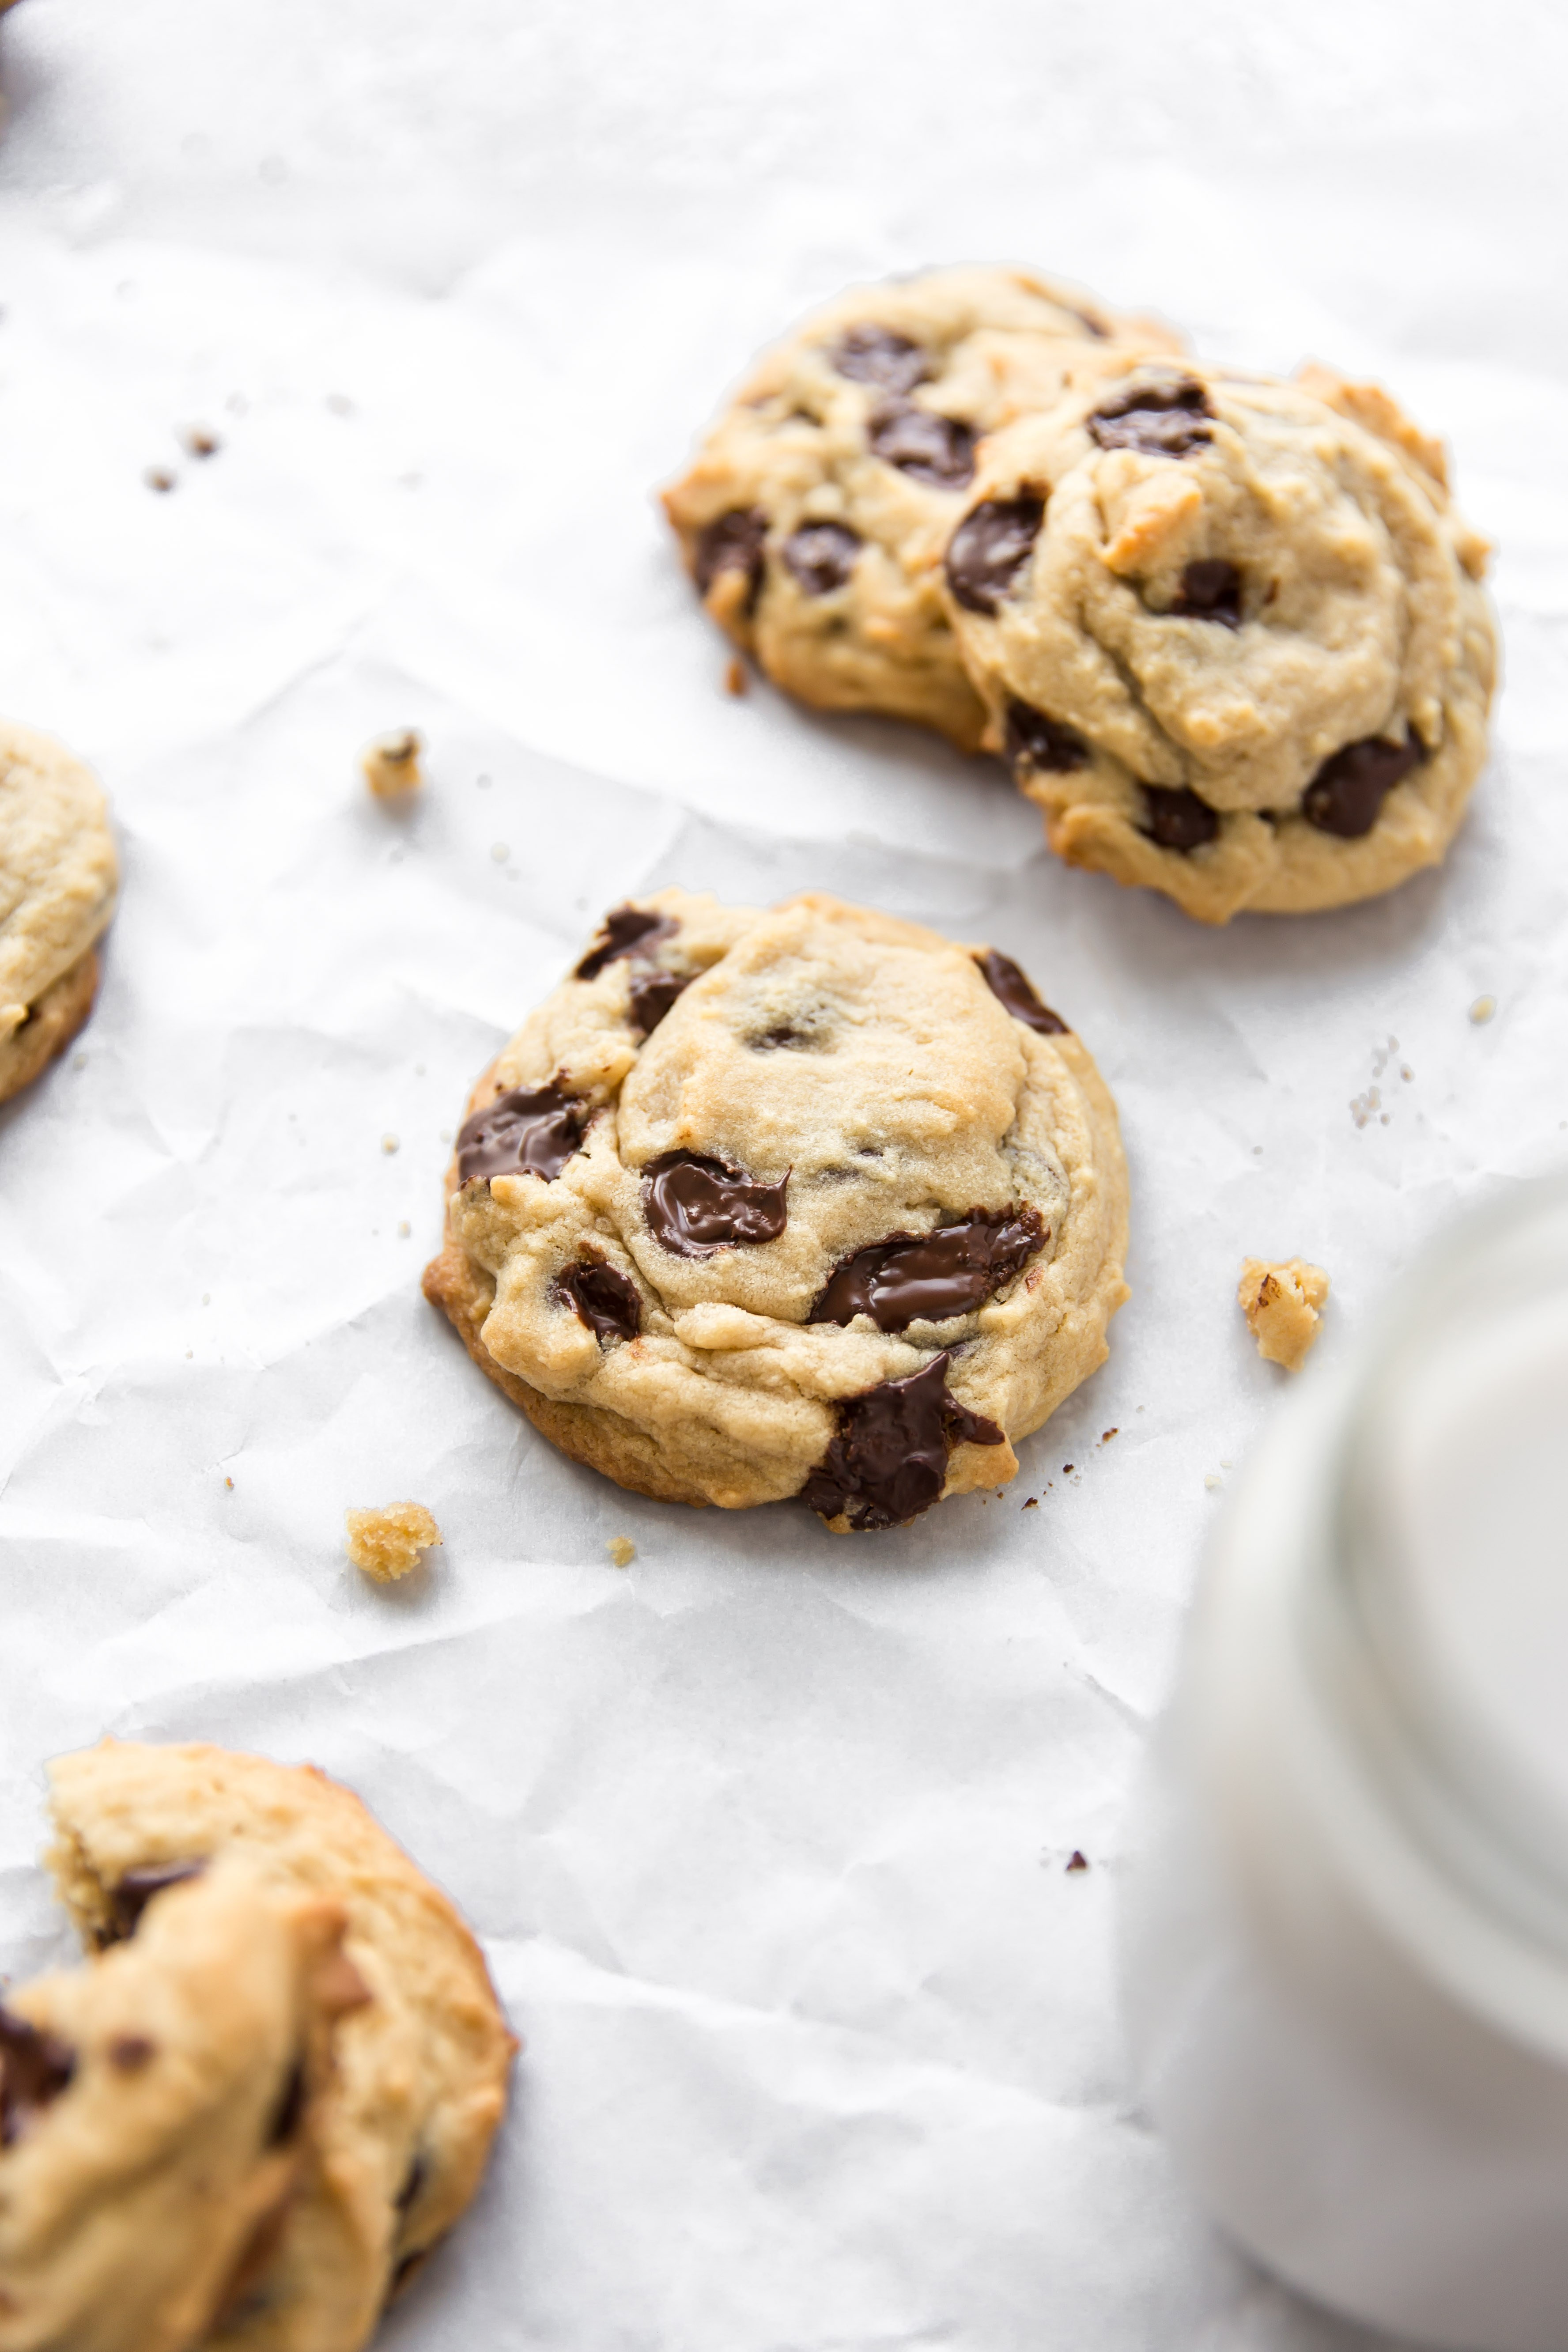 Peanut Butter Cookies With Chocolate Chips  Peanut Butter Chocolate Chip Cookies KJ and pany